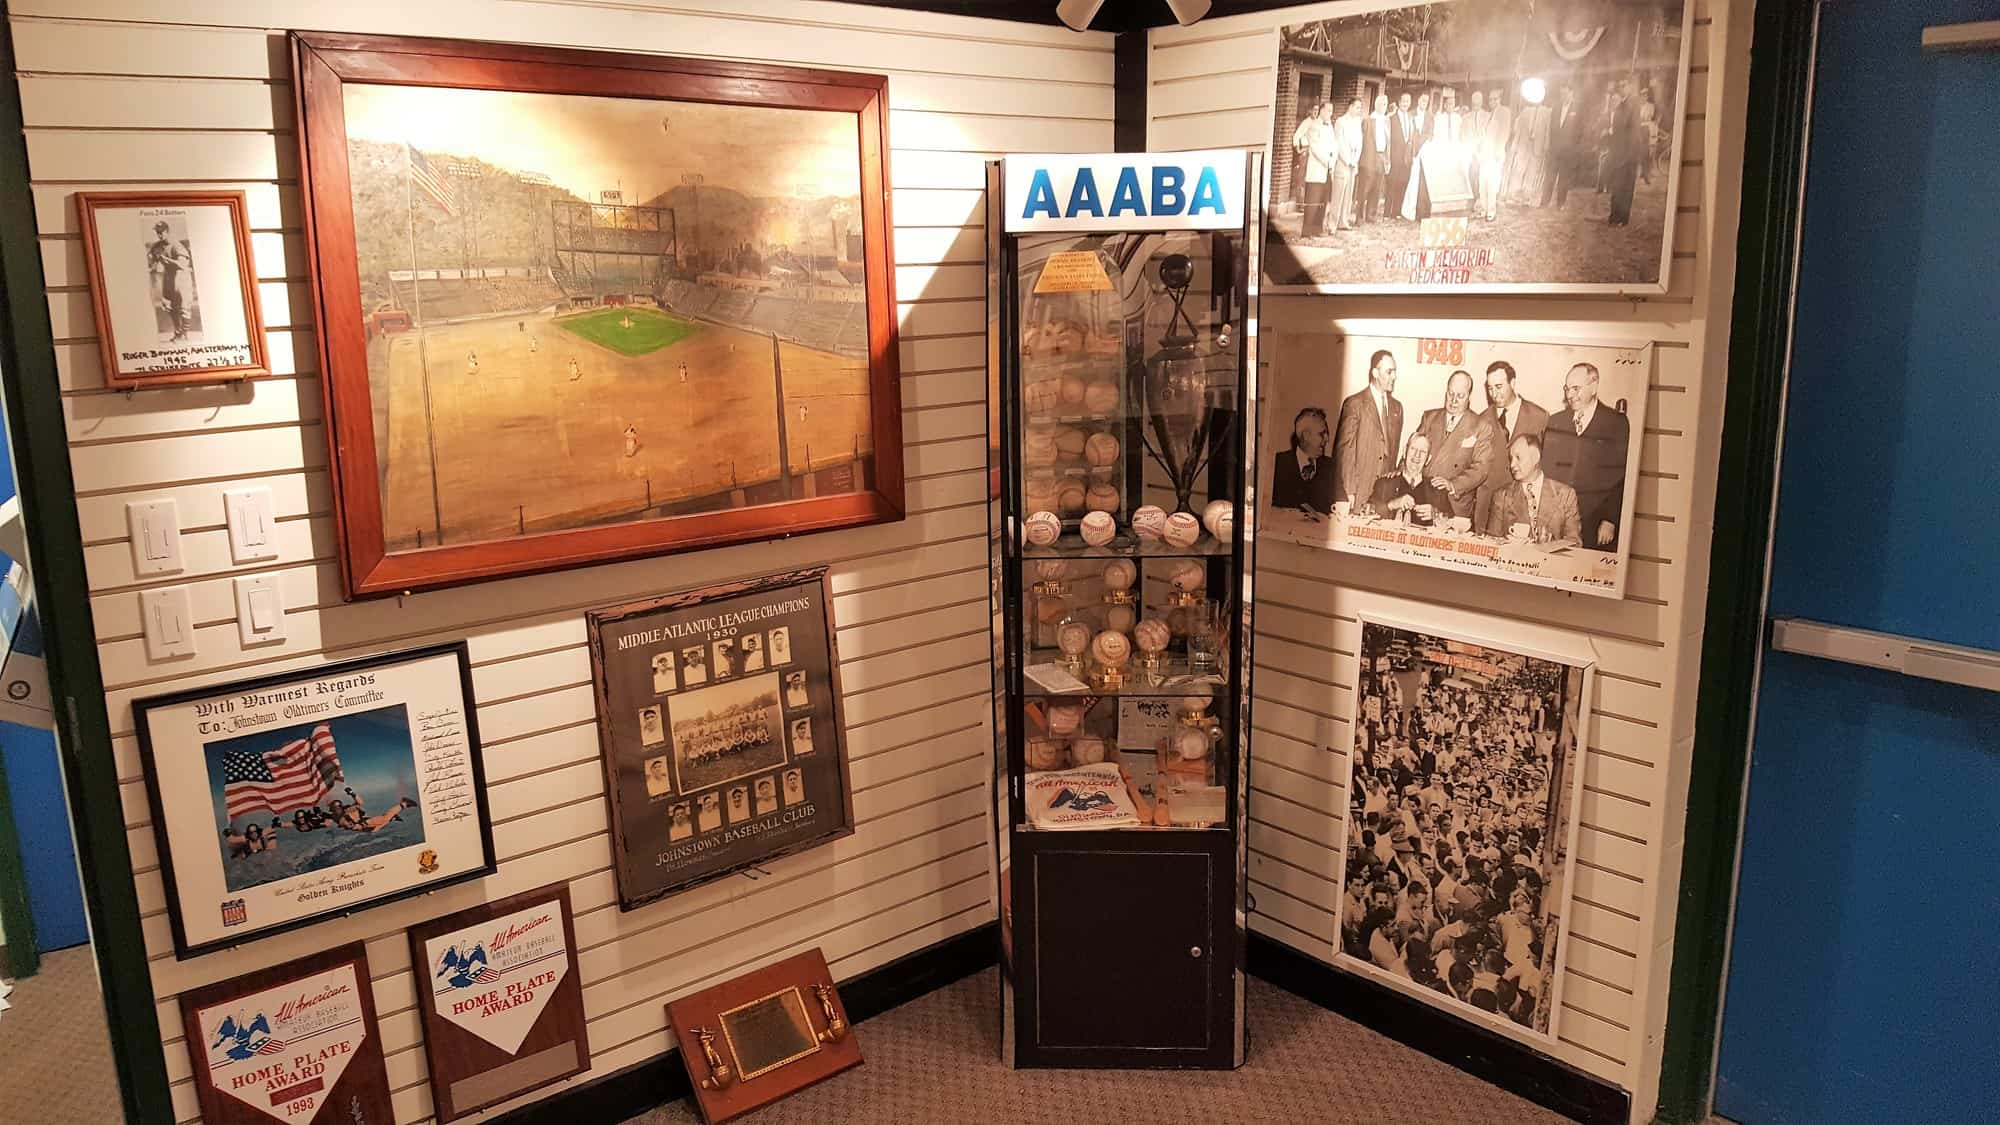 AAABA HOF corner Bowman and painting and case